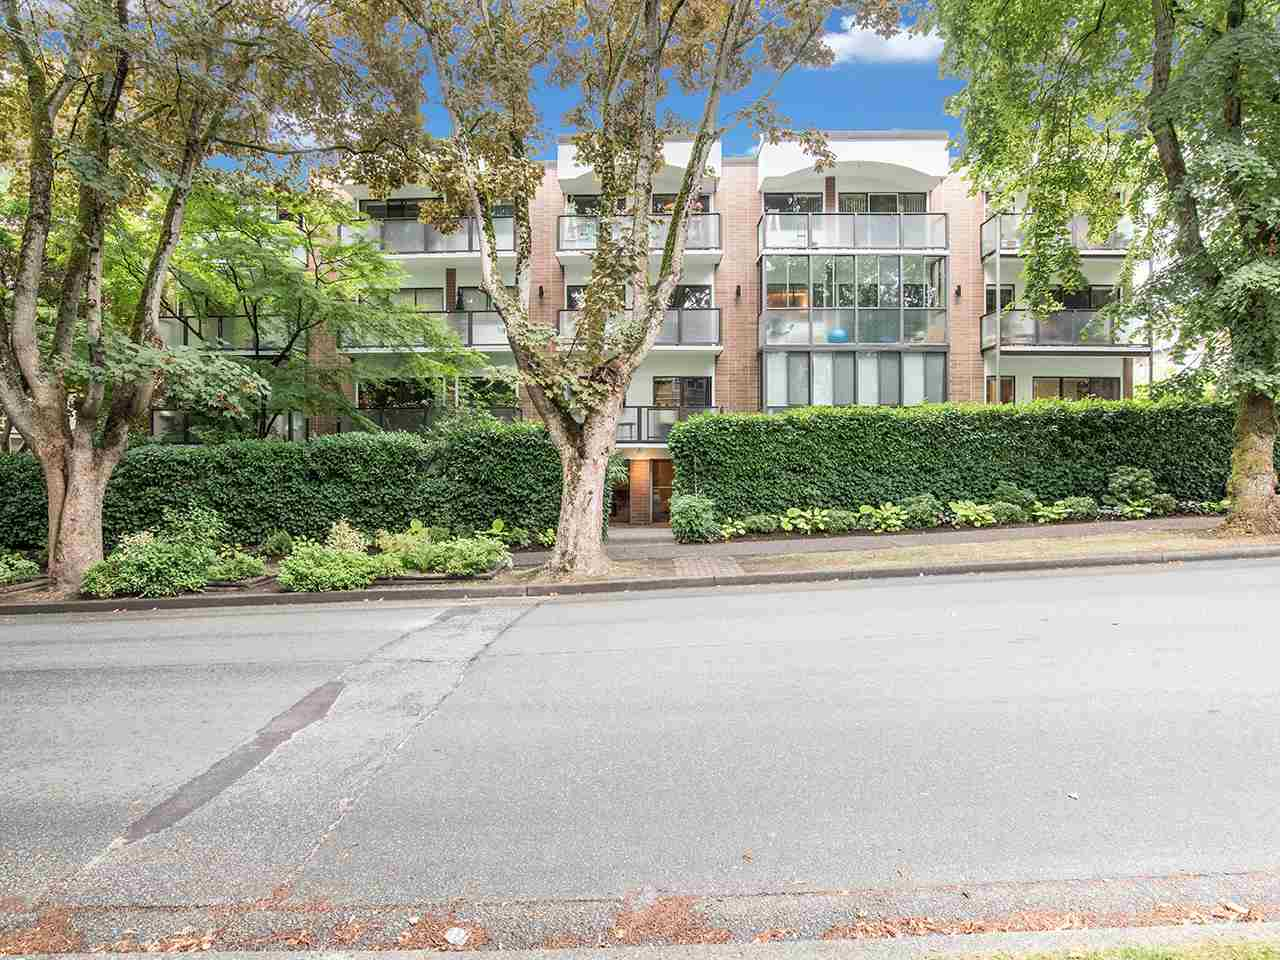 104 1535 W NELSON STREET - West End VW Apartment/Condo for sale, 1 Bedroom (R2482296) - #1